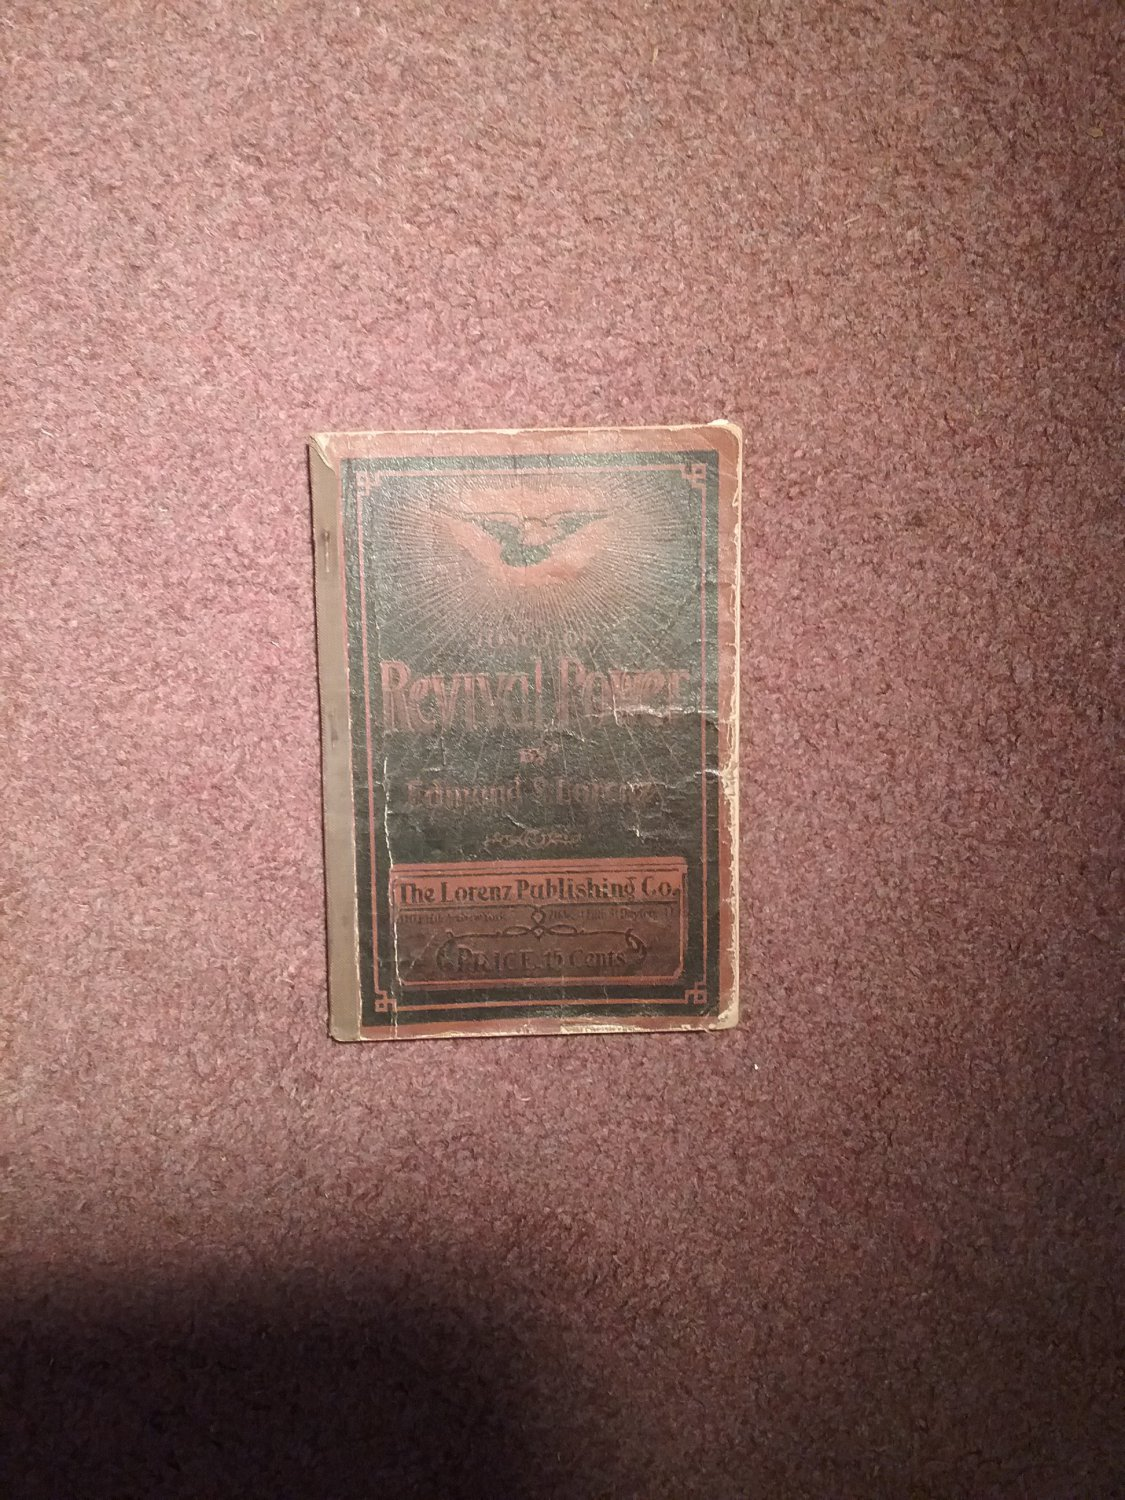 1907 Songs of Revival Power by Edmund Lorenz Hymnal  0707161496